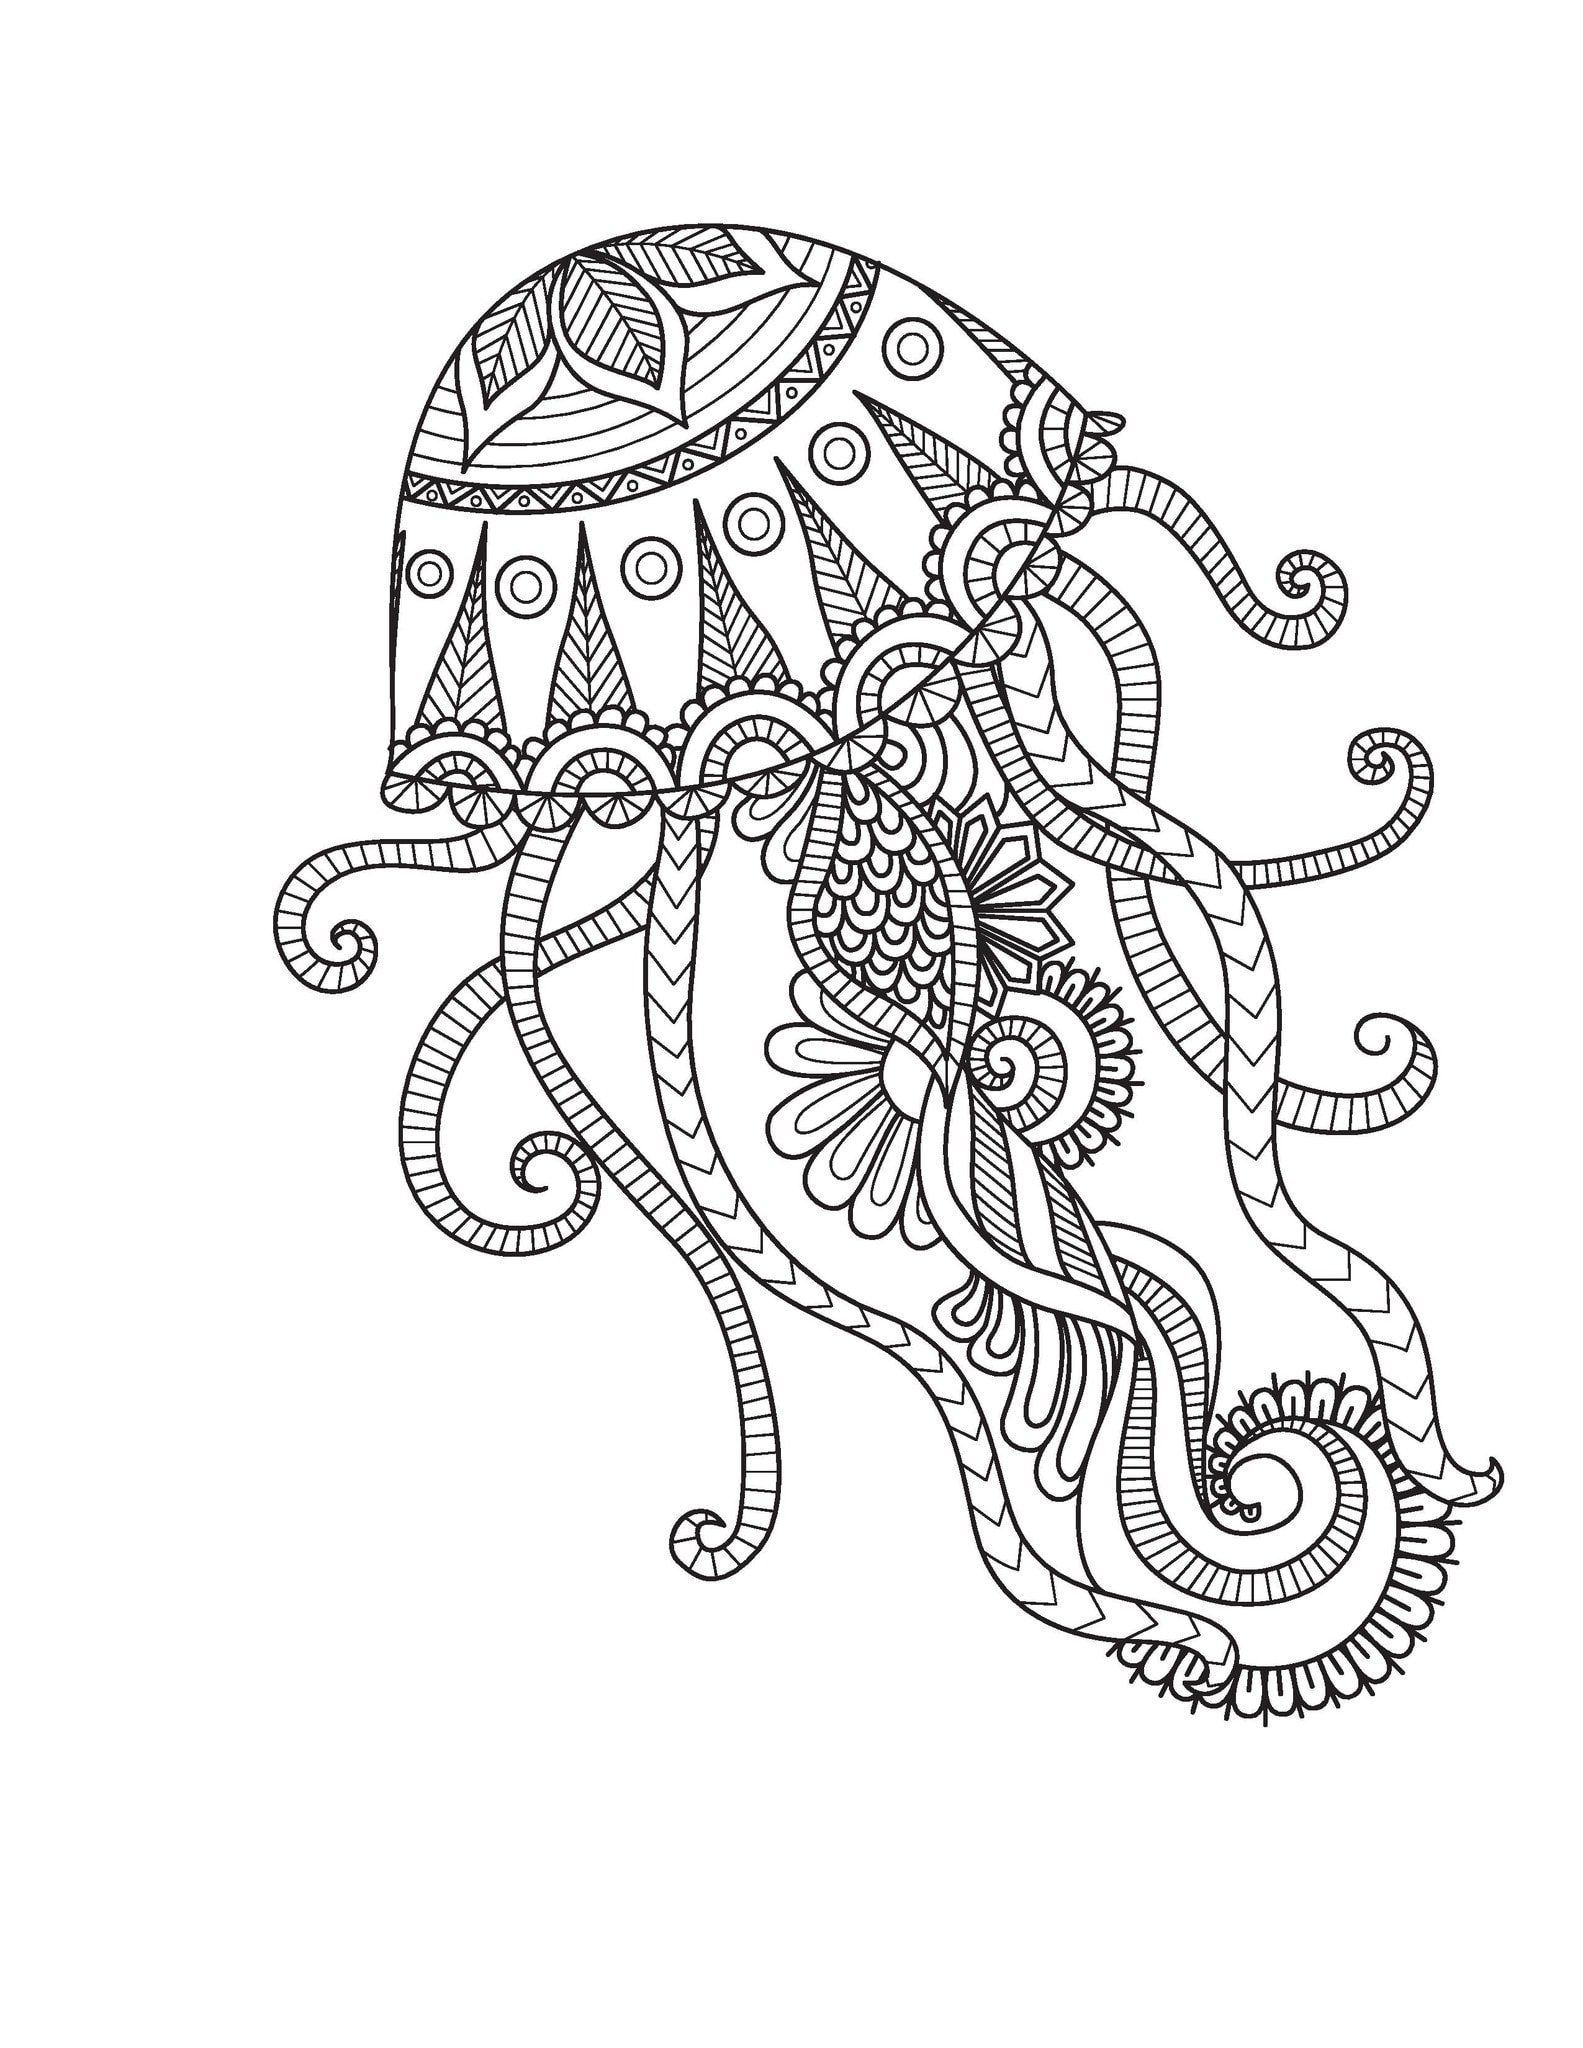 Medium Designs For Adults Who Color Live Your Life In Color Series Mandala Coloring Pages Mandala Coloring Animal Coloring Pages